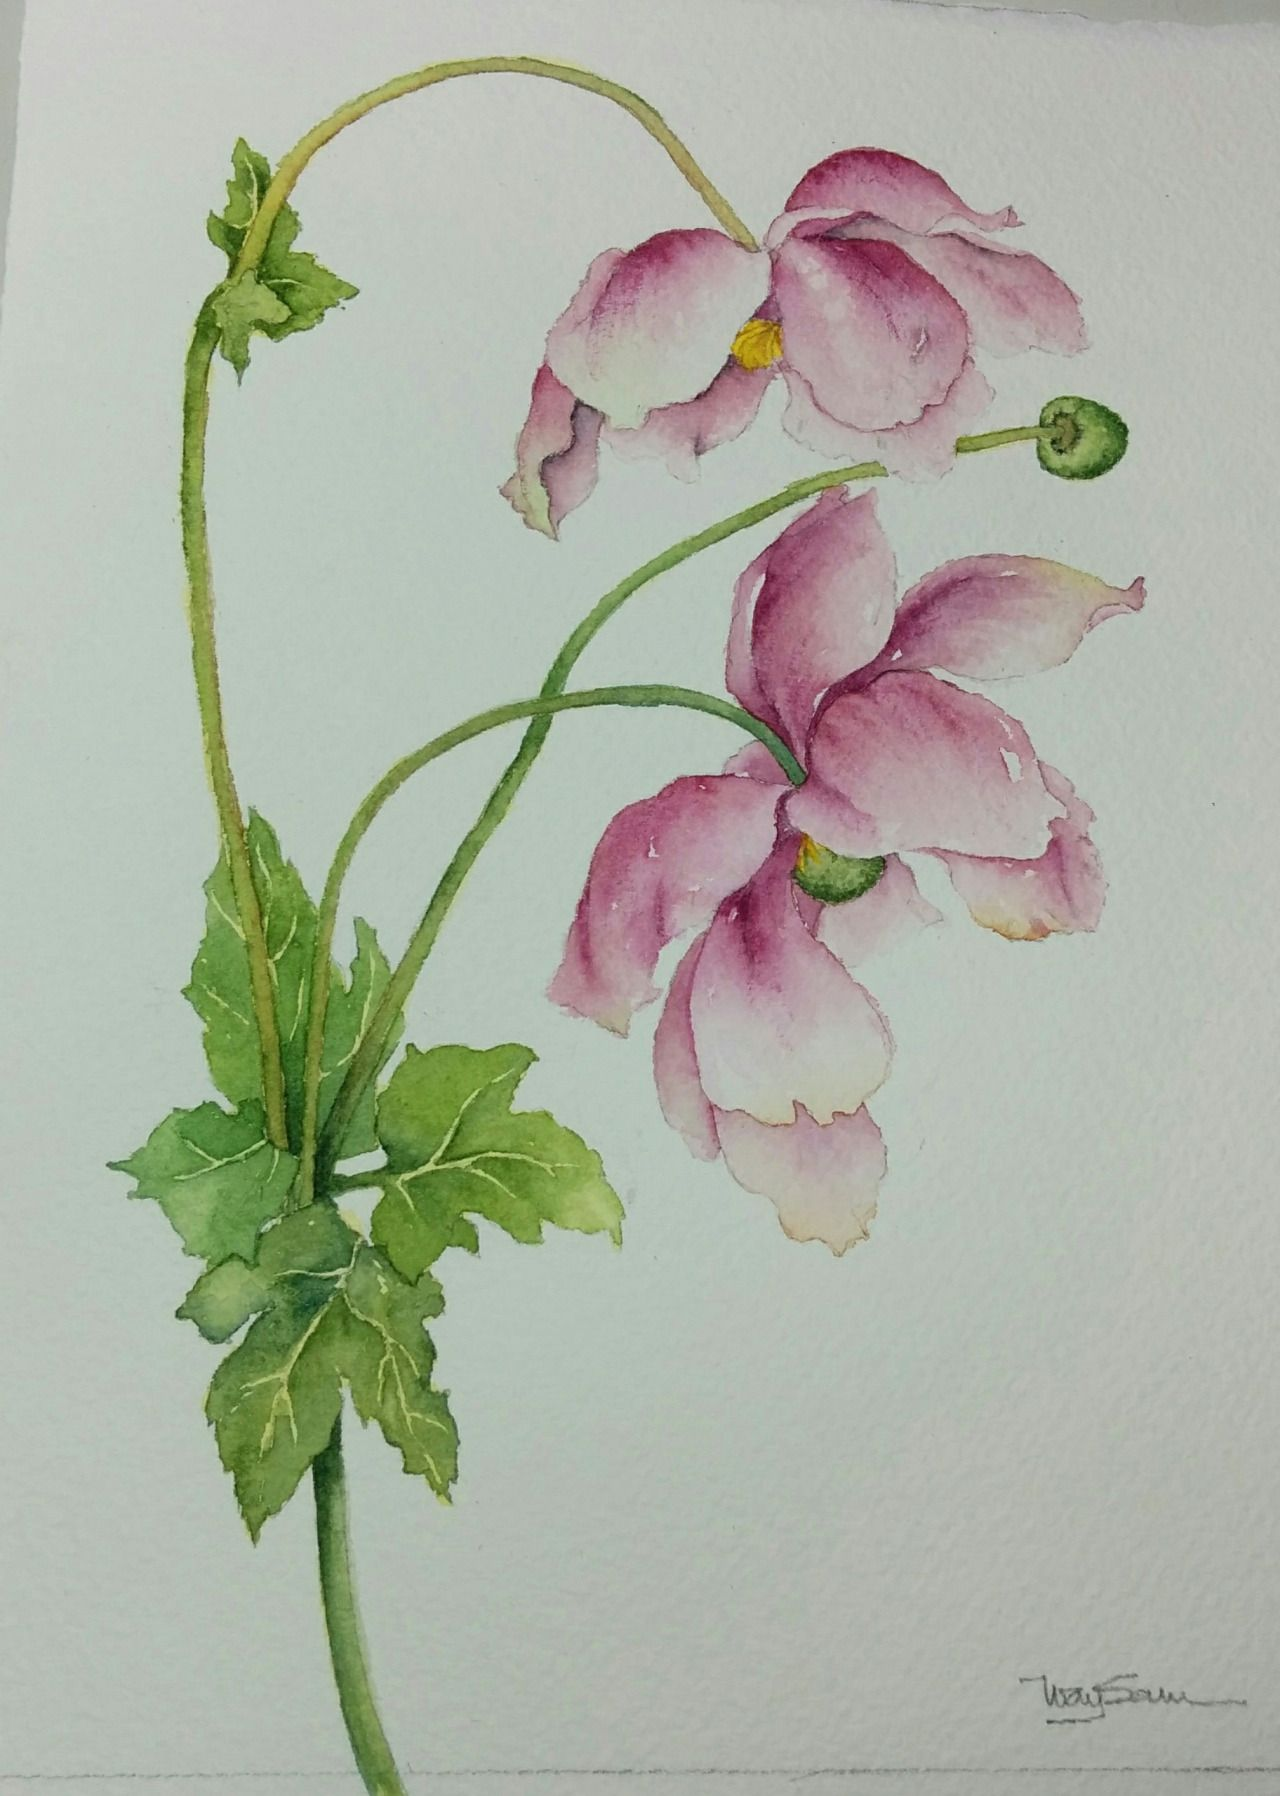 Japanese Anemones Or Wind Flower Watercolour Painting By Way Sam